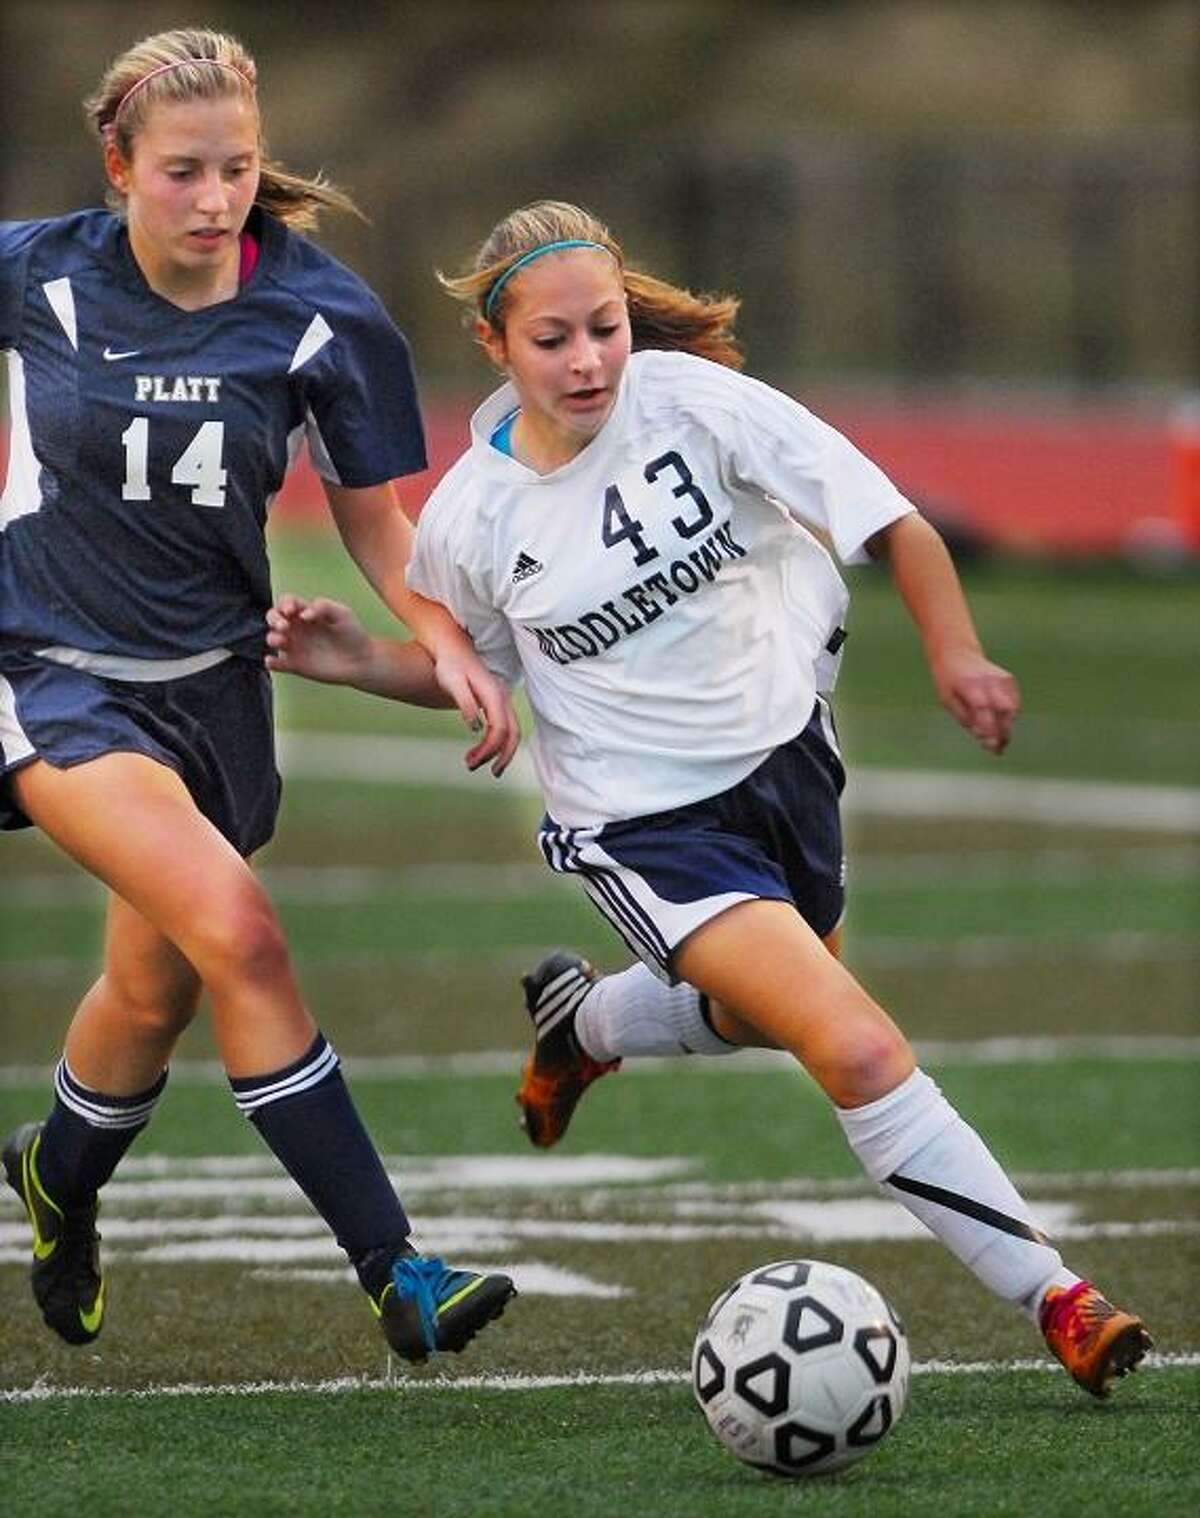 Catherine Avalone/The Middletown Press Middletown forward Kellie Gambell manuevers the ball around Platt junior Jessica Kubeck during a match Friday afternoon. The Blue Dragons defeated Platt 2-1 in overtime and remains undefeated 14-0-1.